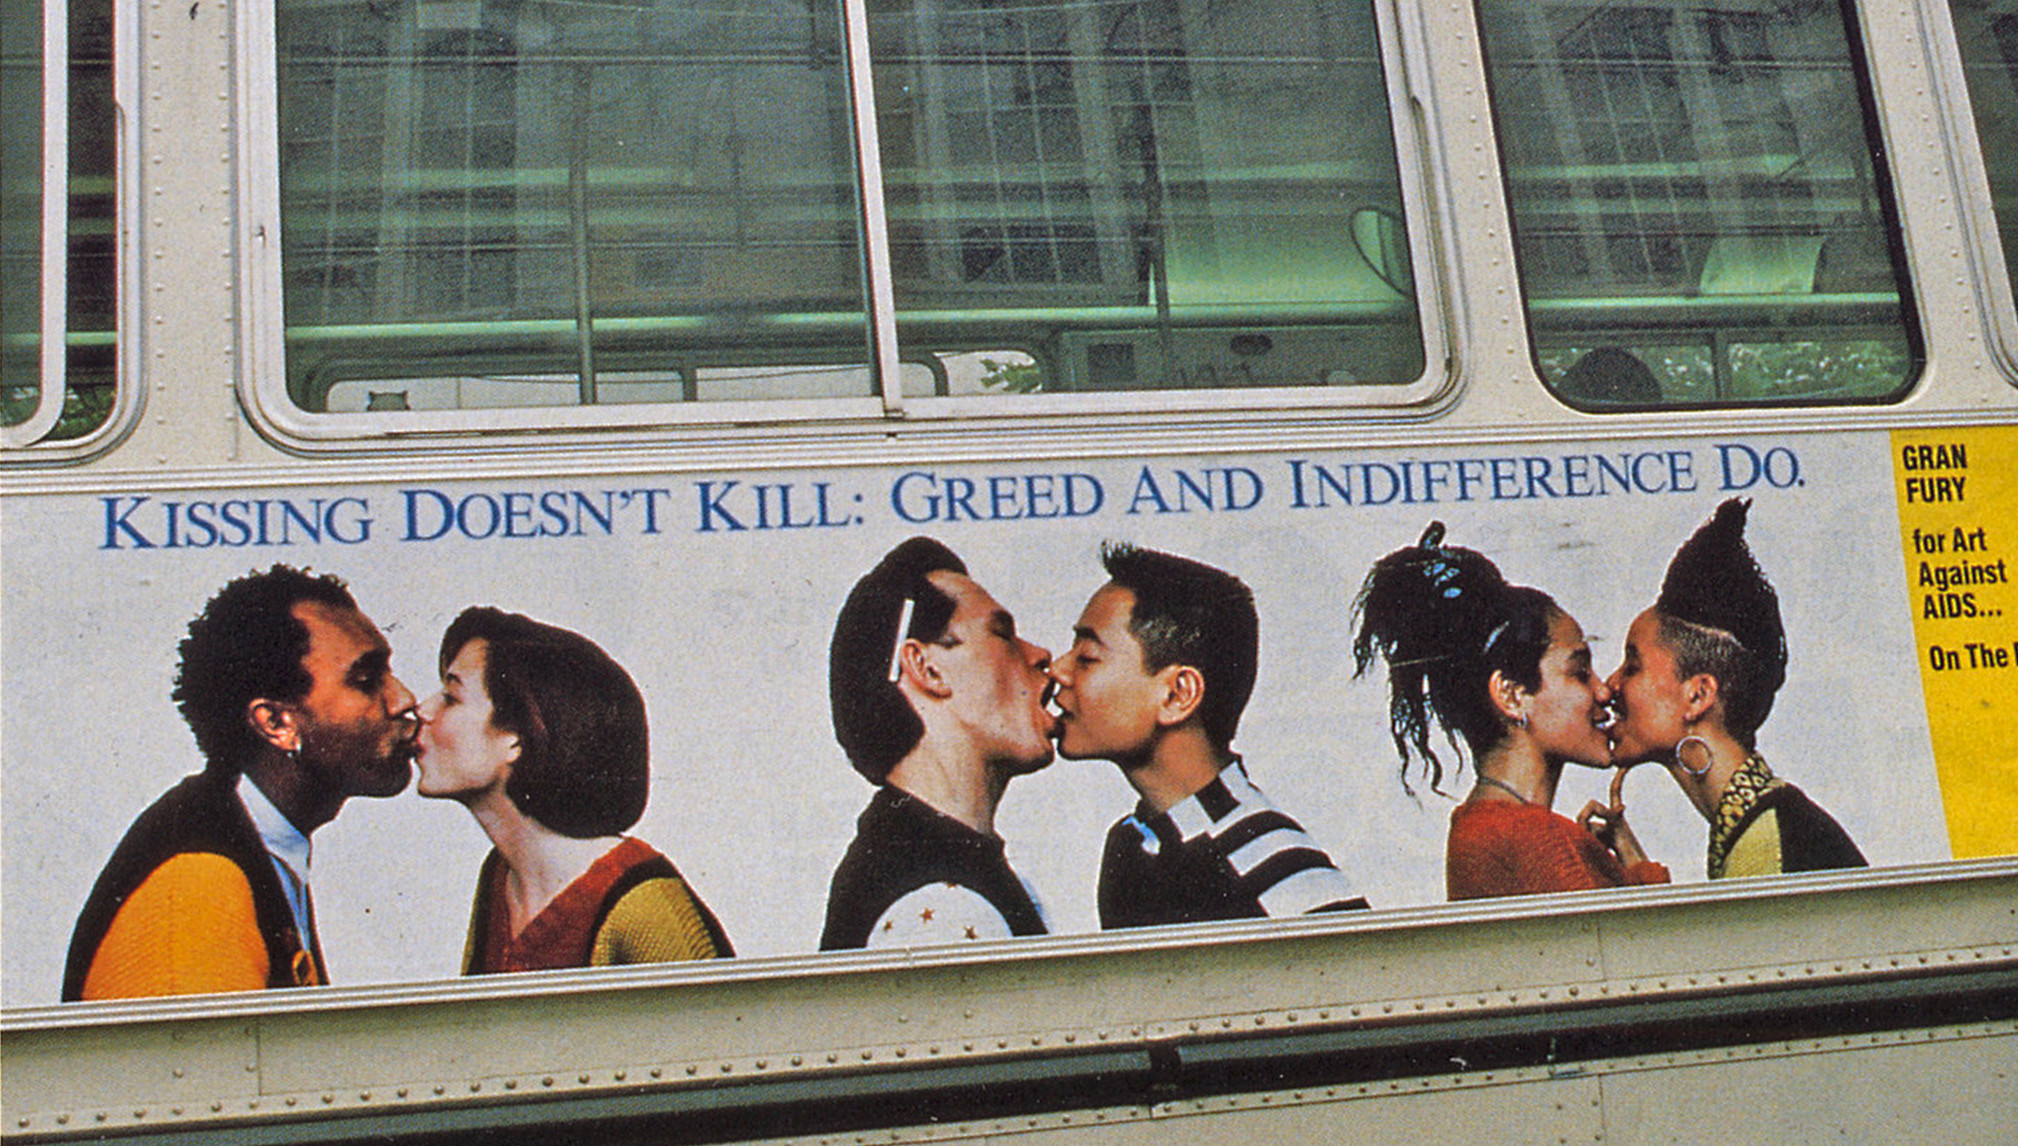 Gran Fury, Kissing Doesn't Kill, Greed and Indifference Do (Muni Bus installation), ink on vinyl, 1990